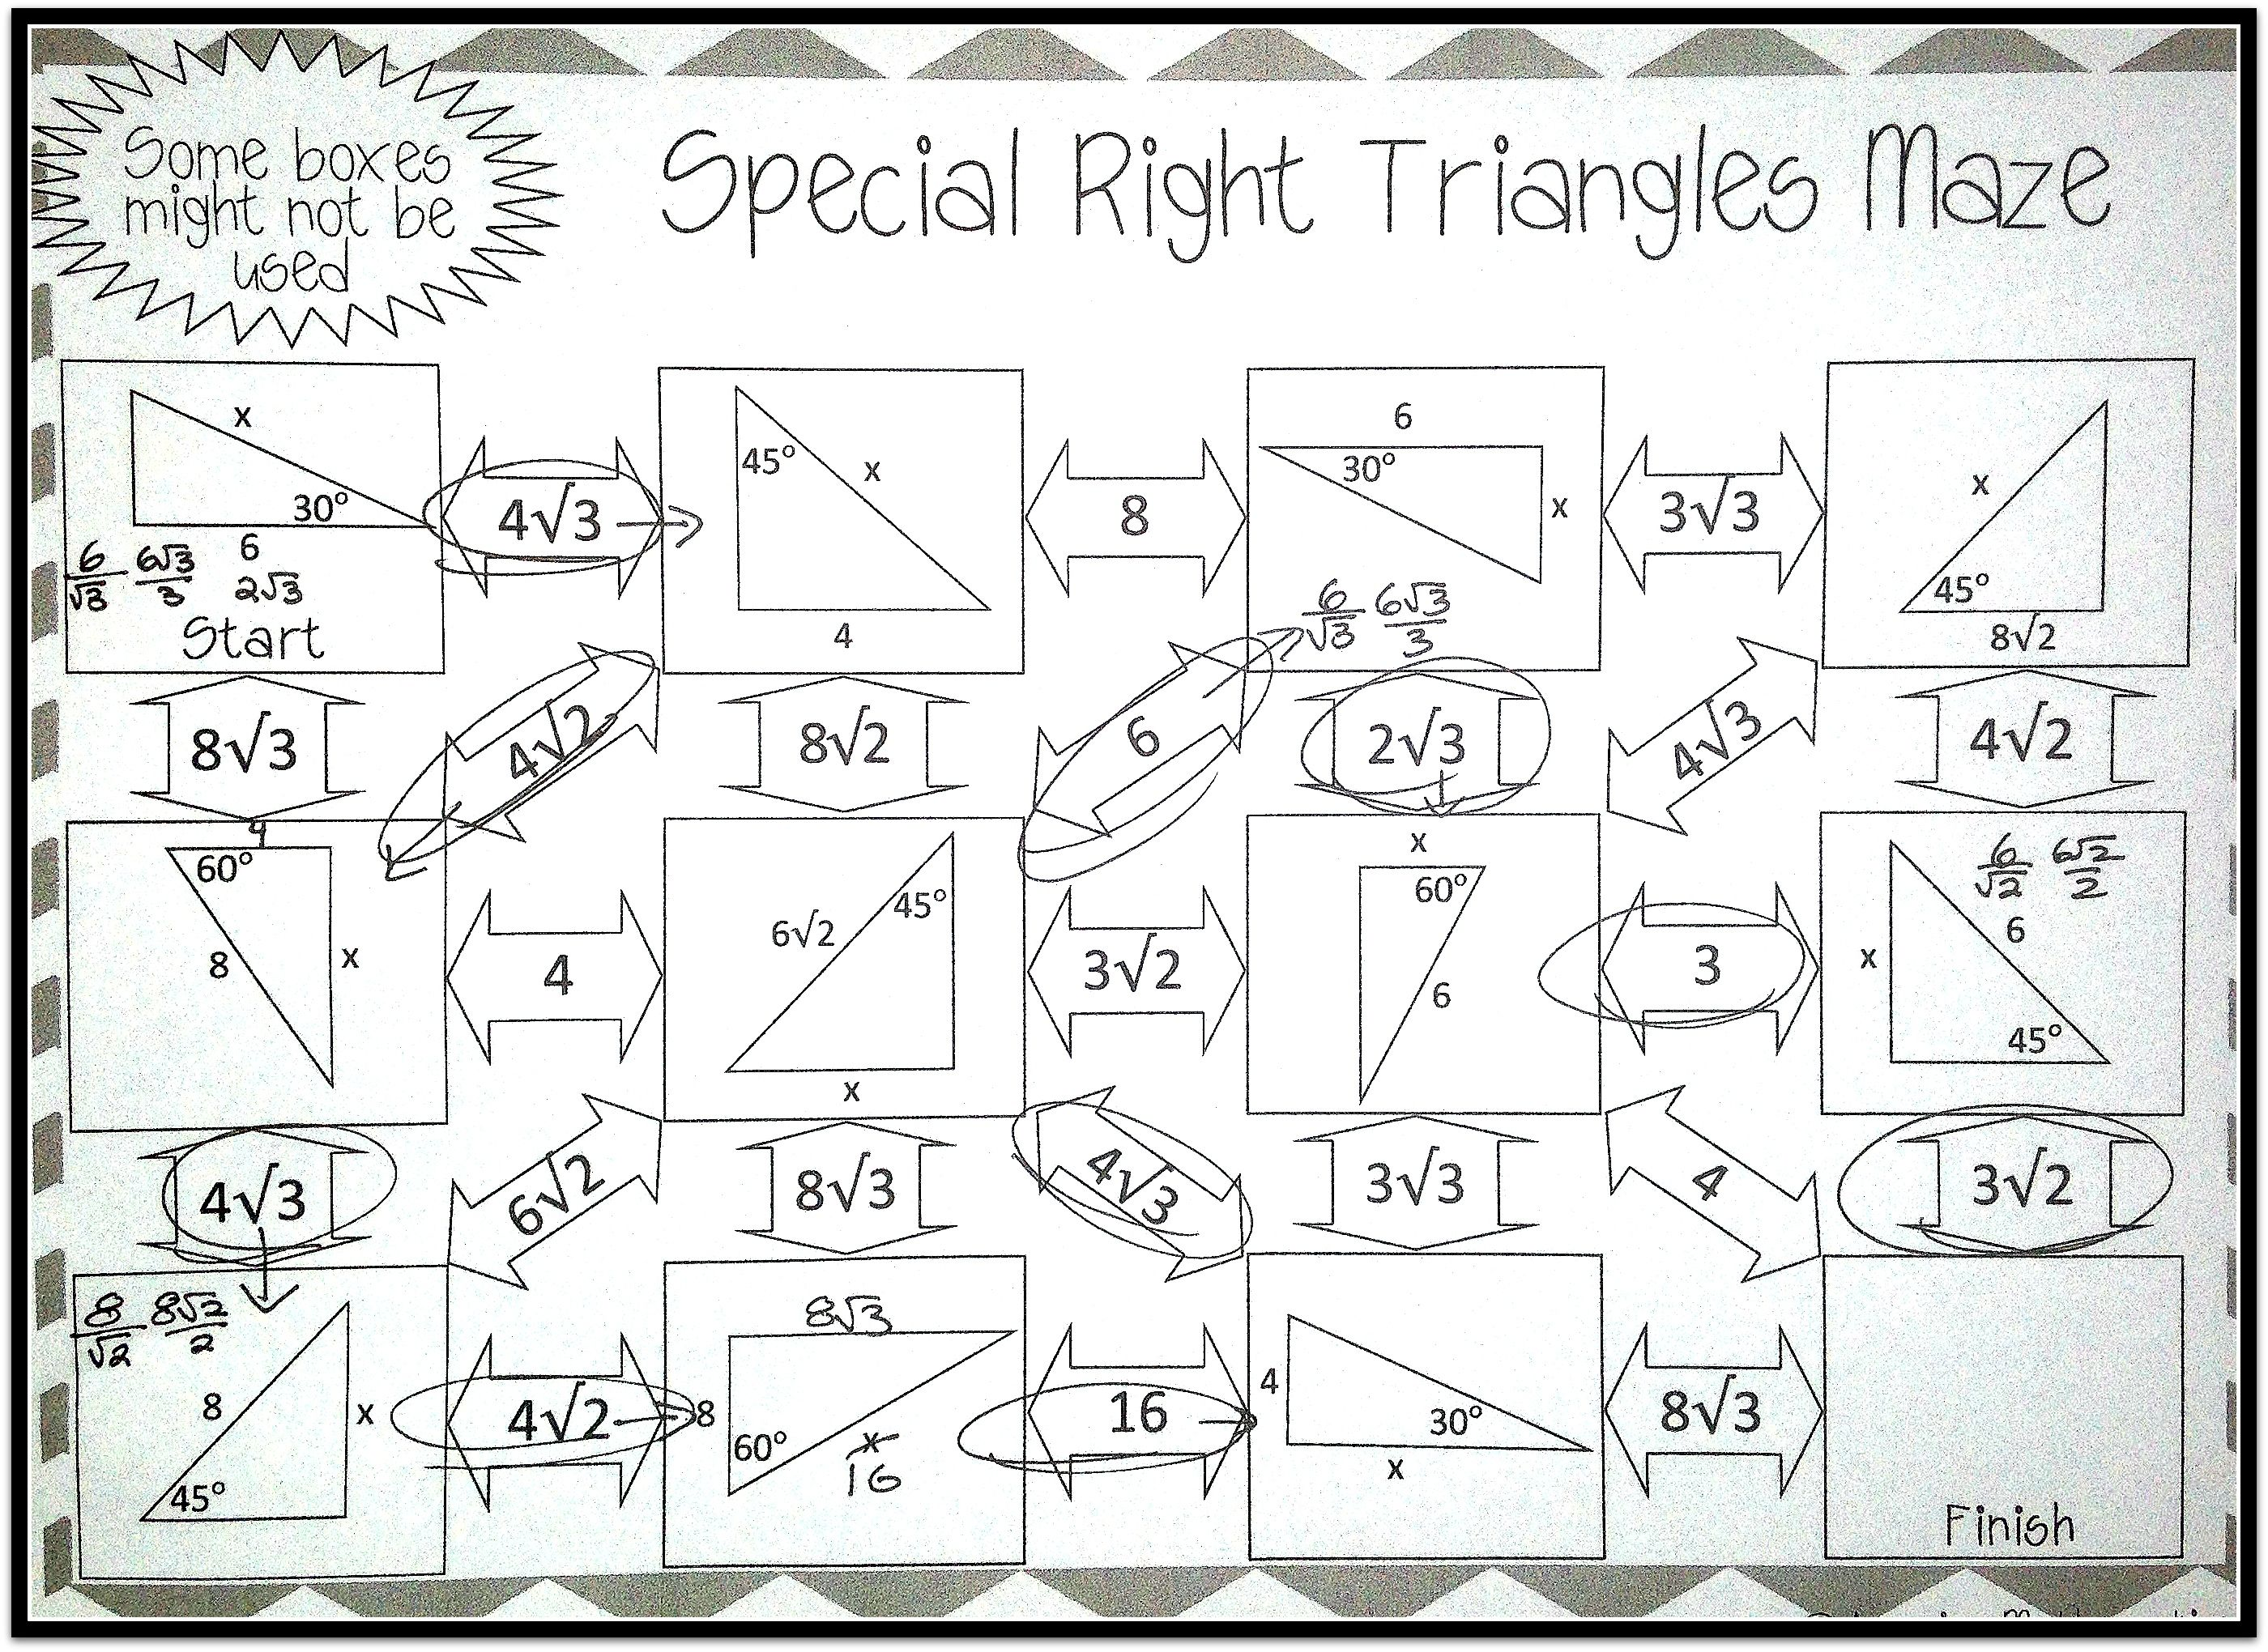 Special Right Triangles Maze Worksheet Answers